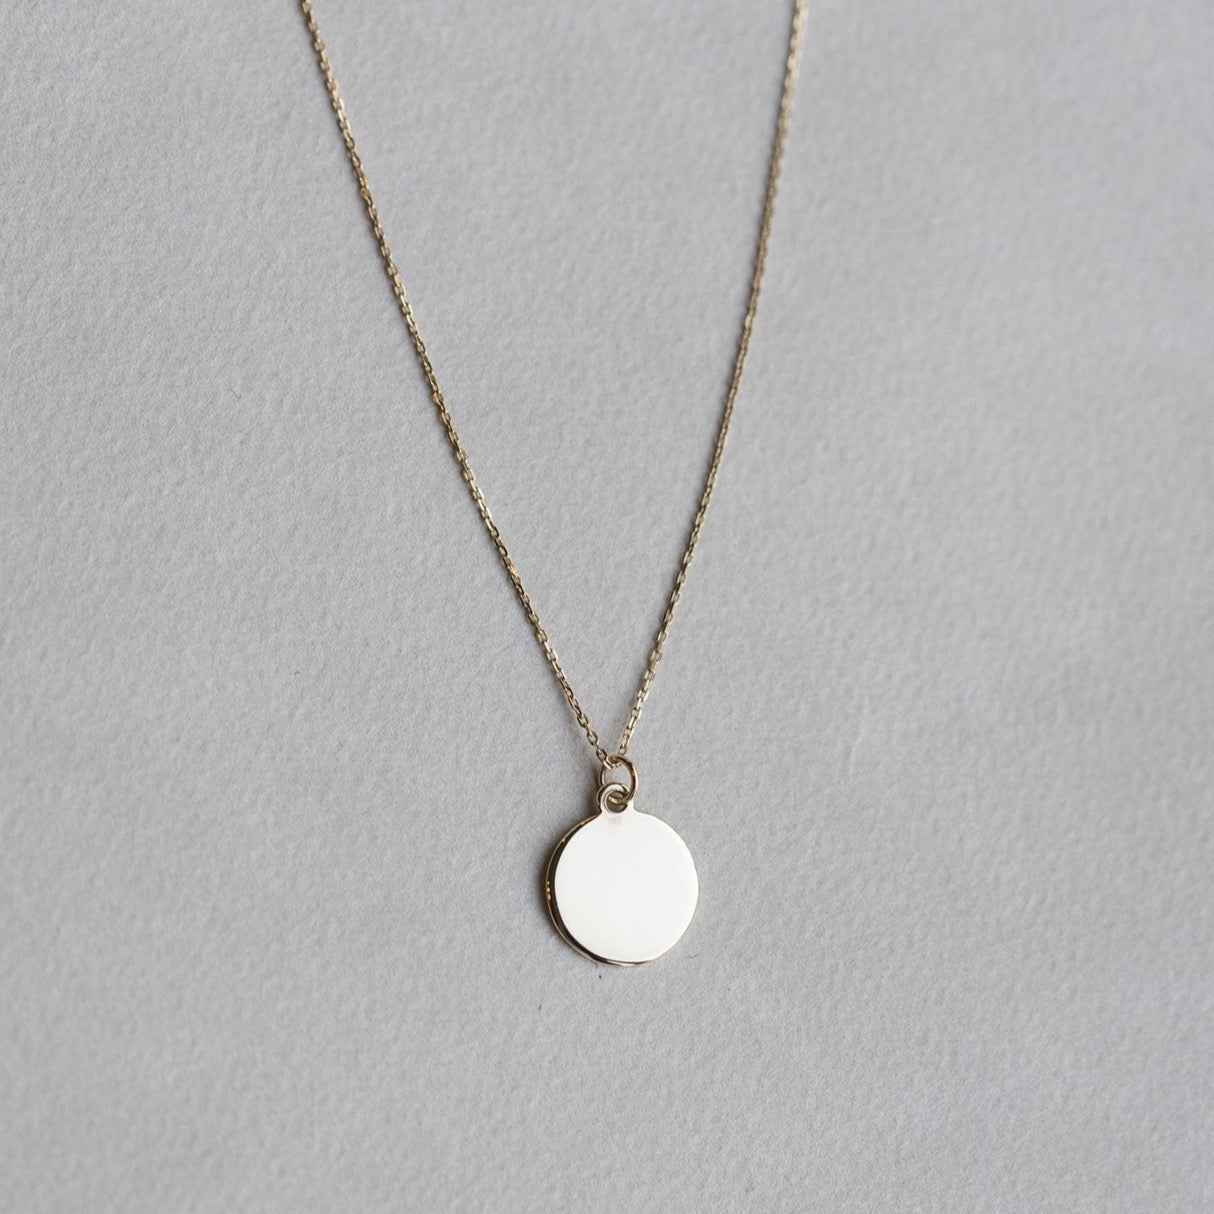 felt's own design - incredibly simple and enchanting polished gold disc